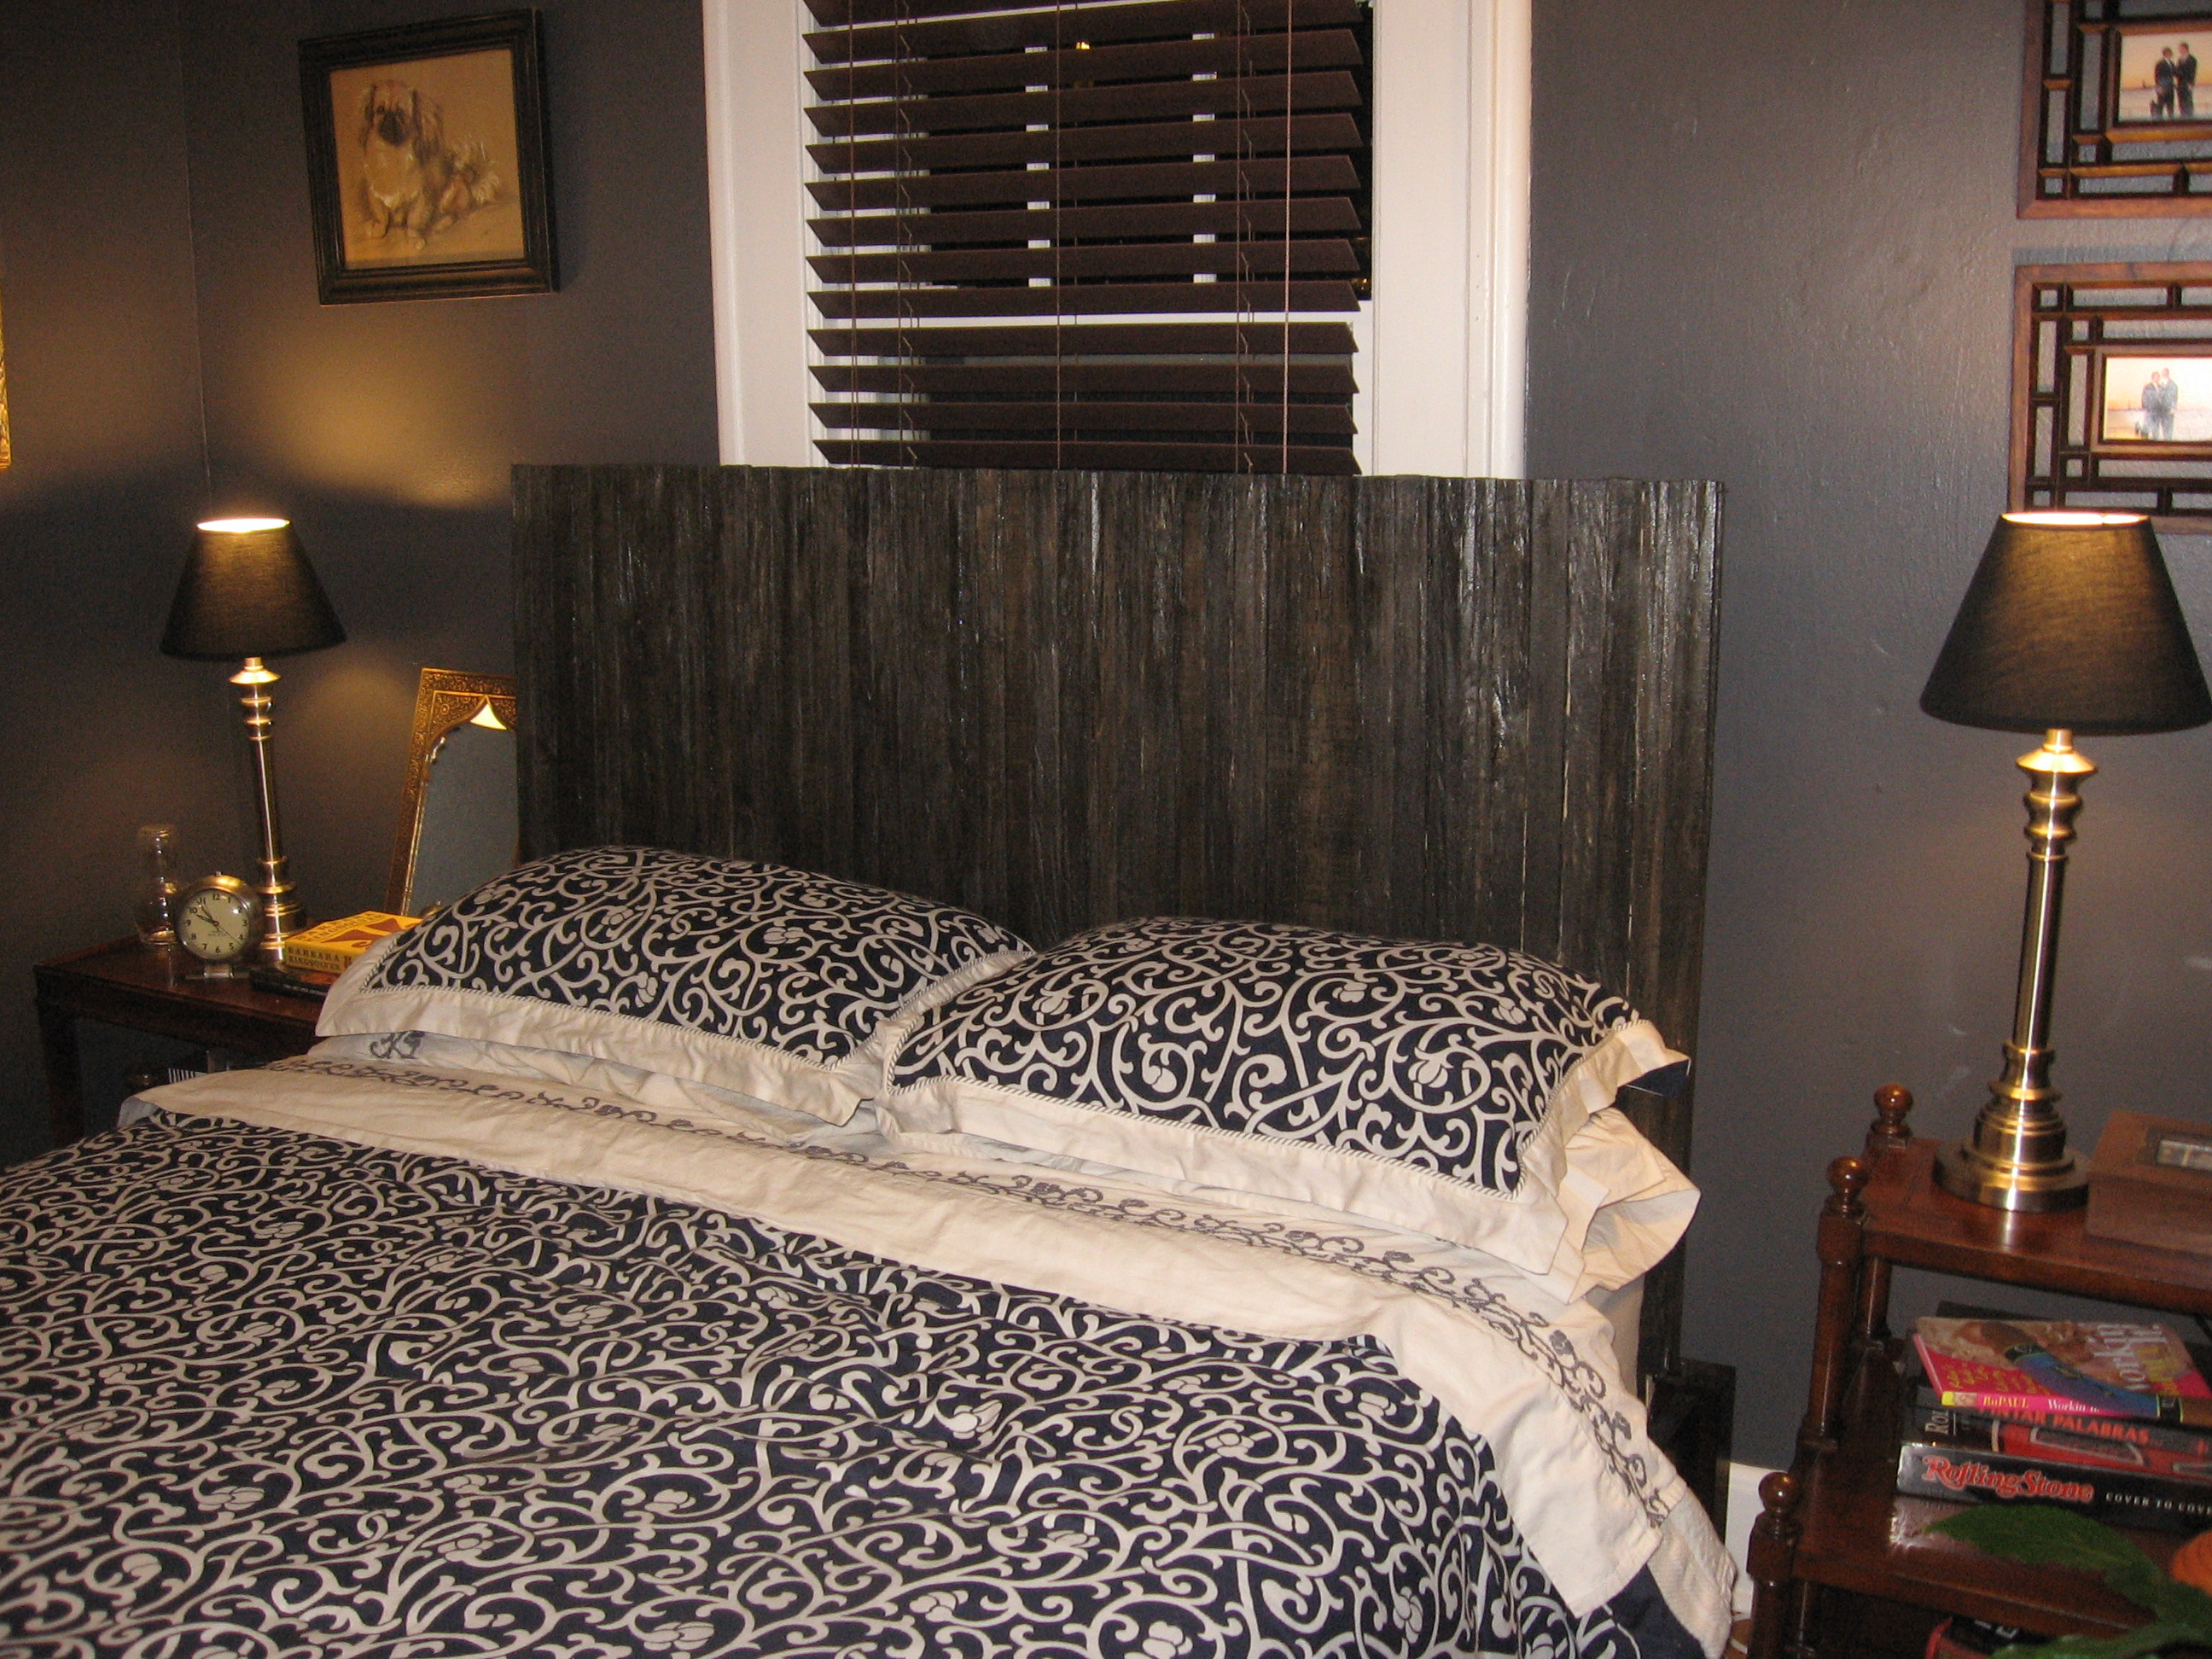 Homemade Headboards For Beds Stunning Our Crafty Home Wood Lath Headboard  Review